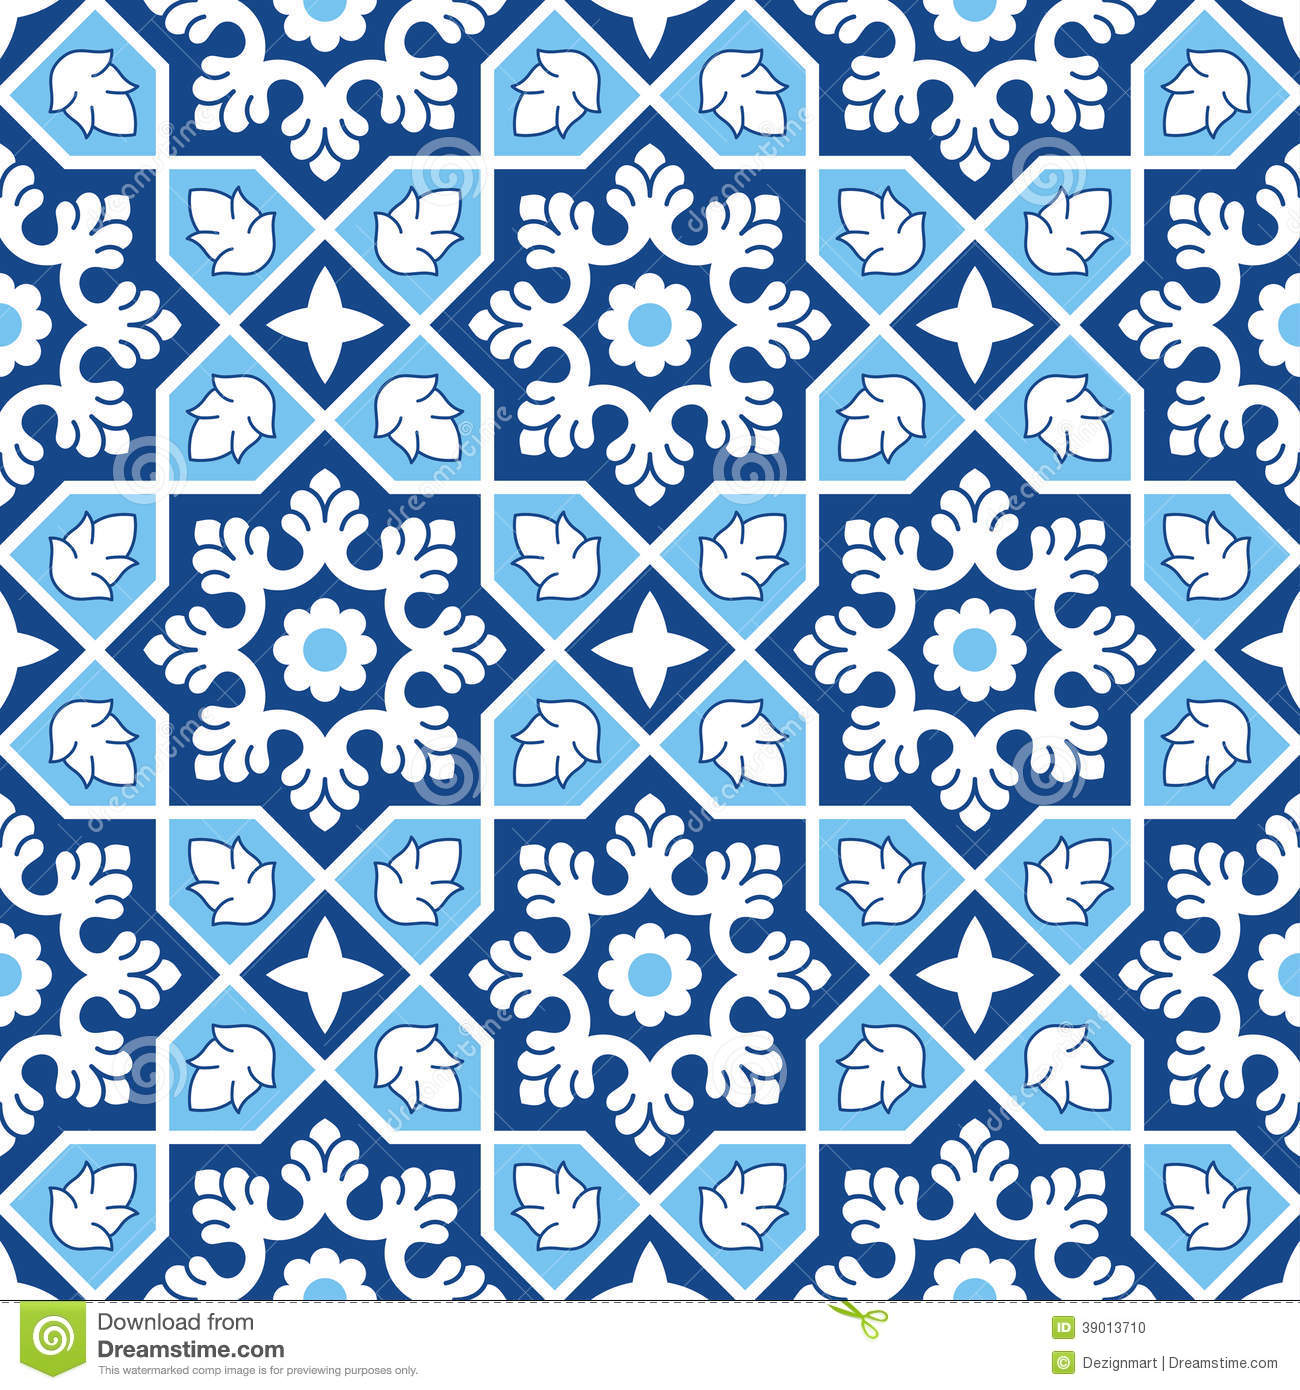 Sindhi Tiling Pattern Vector Stock Vector - Illustration of sindhi ...